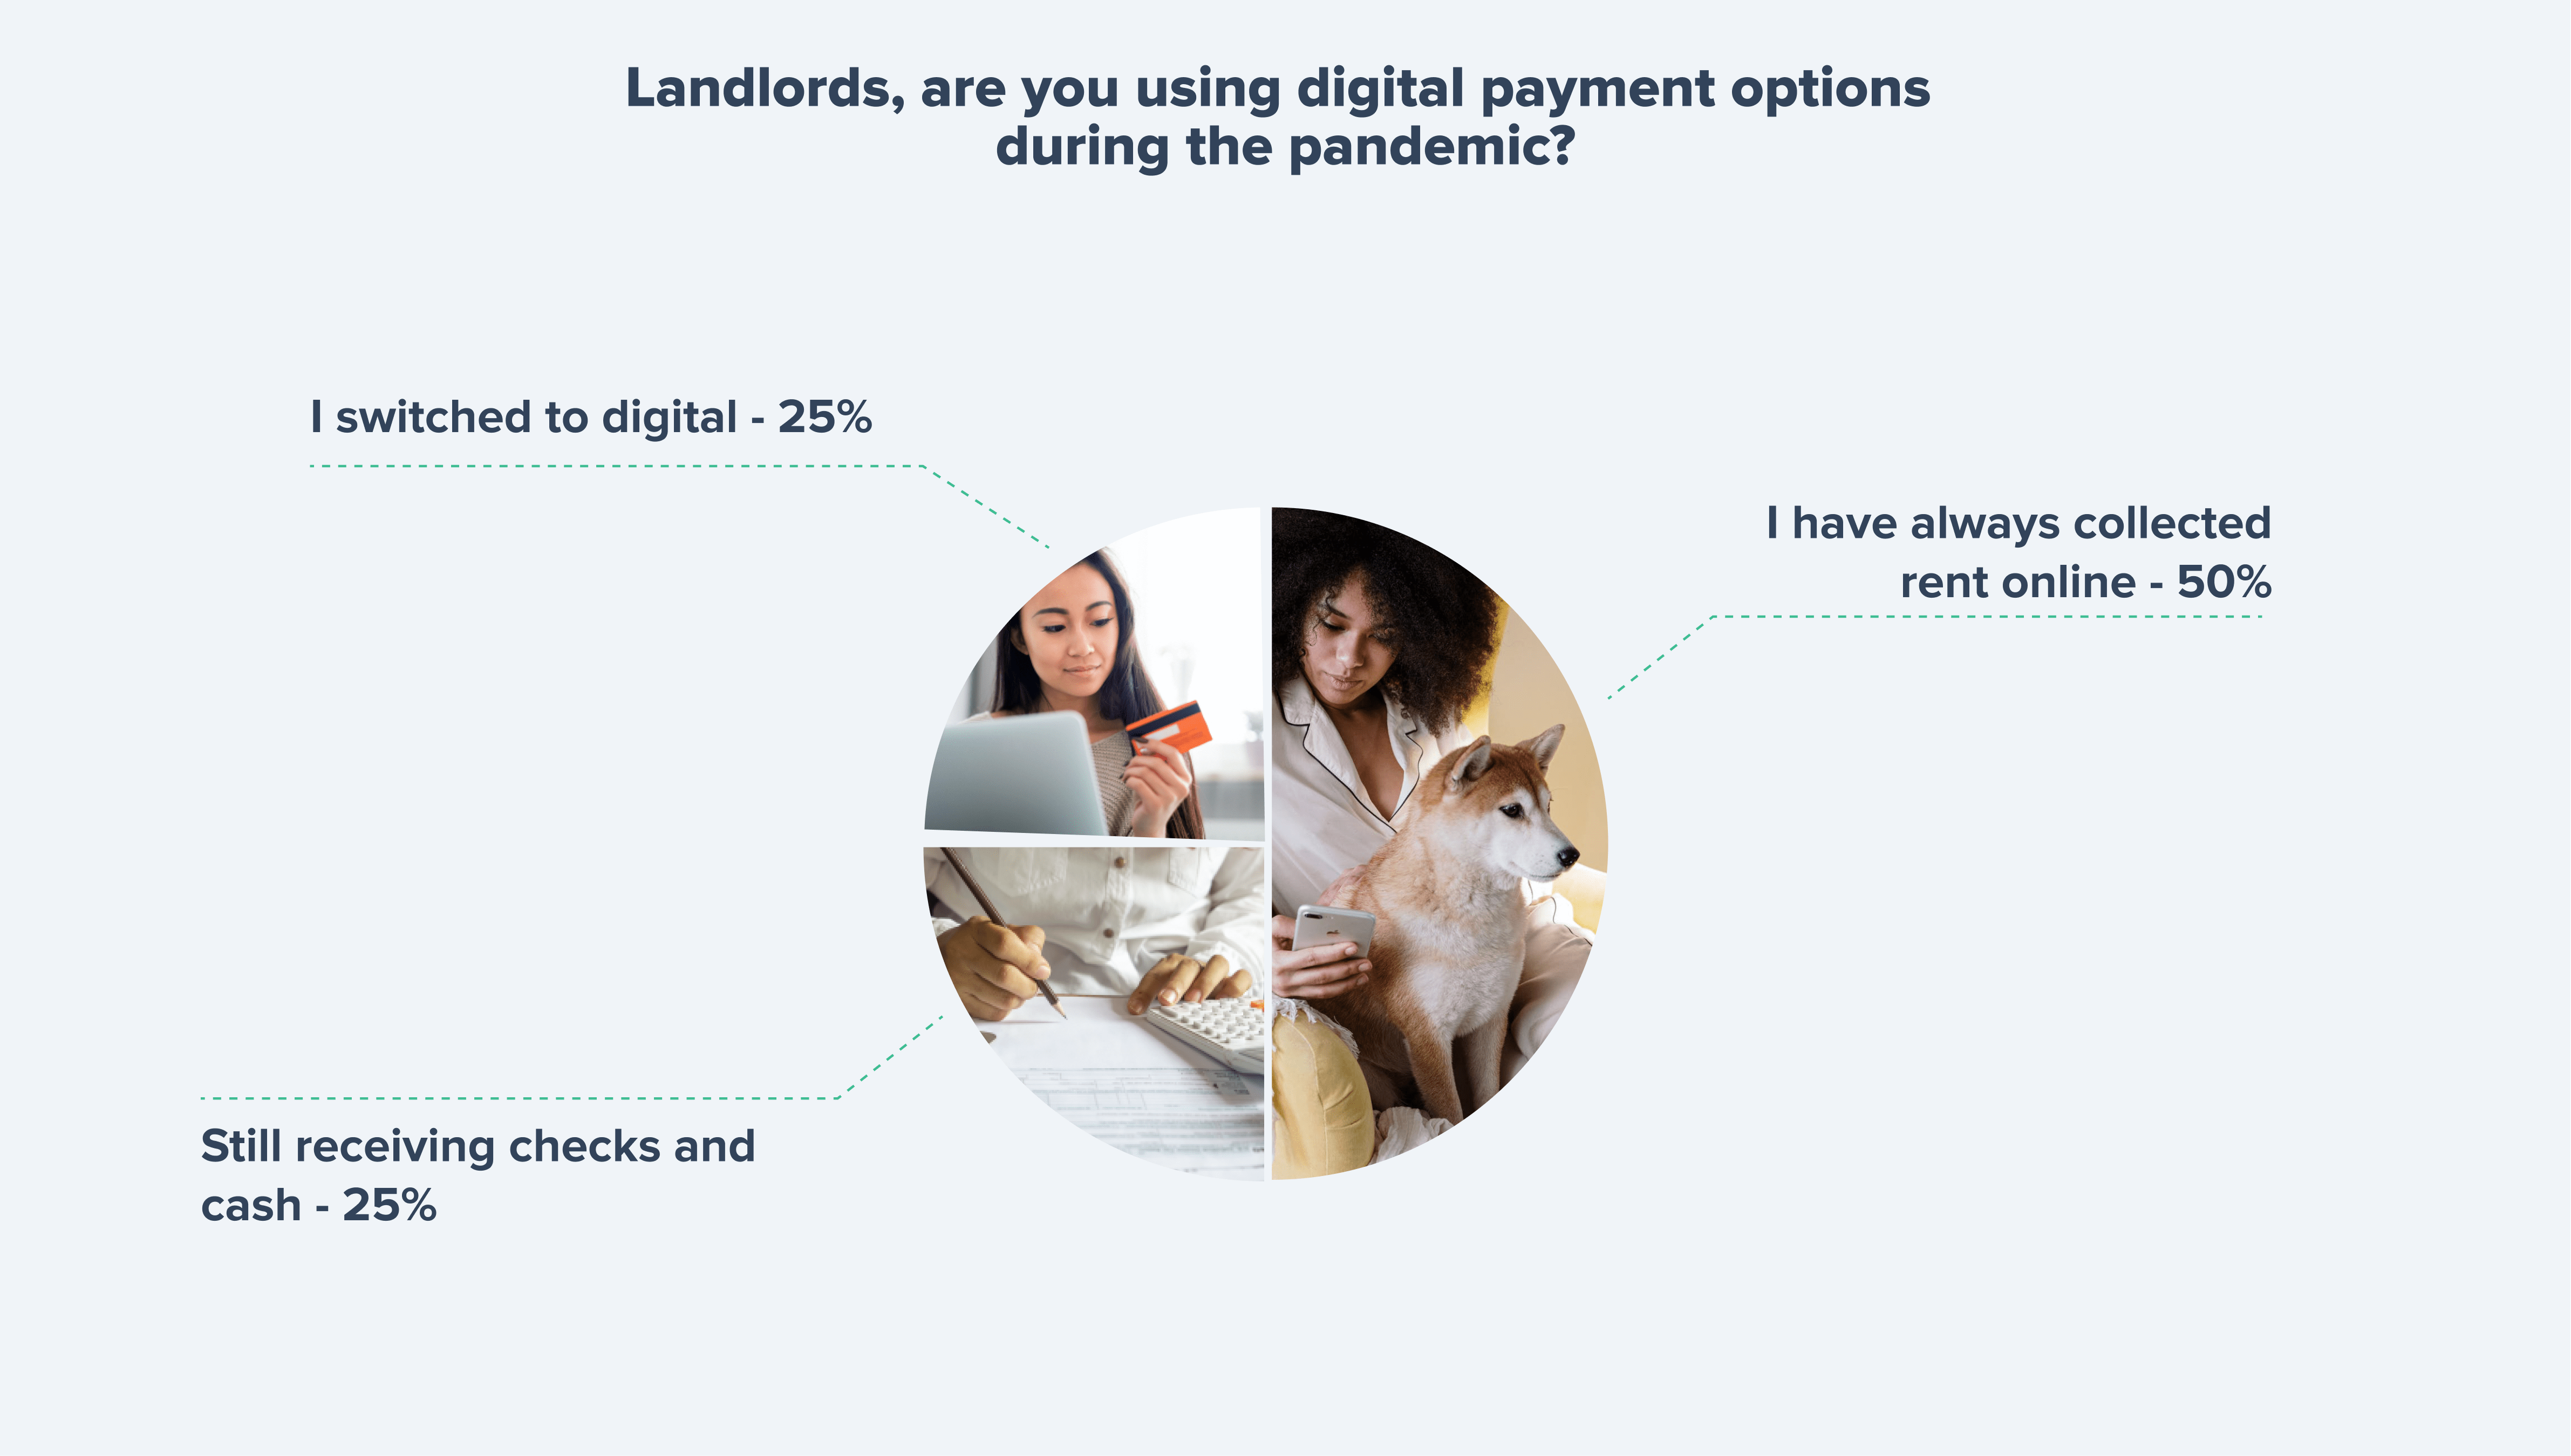 Landlords who use digital payments